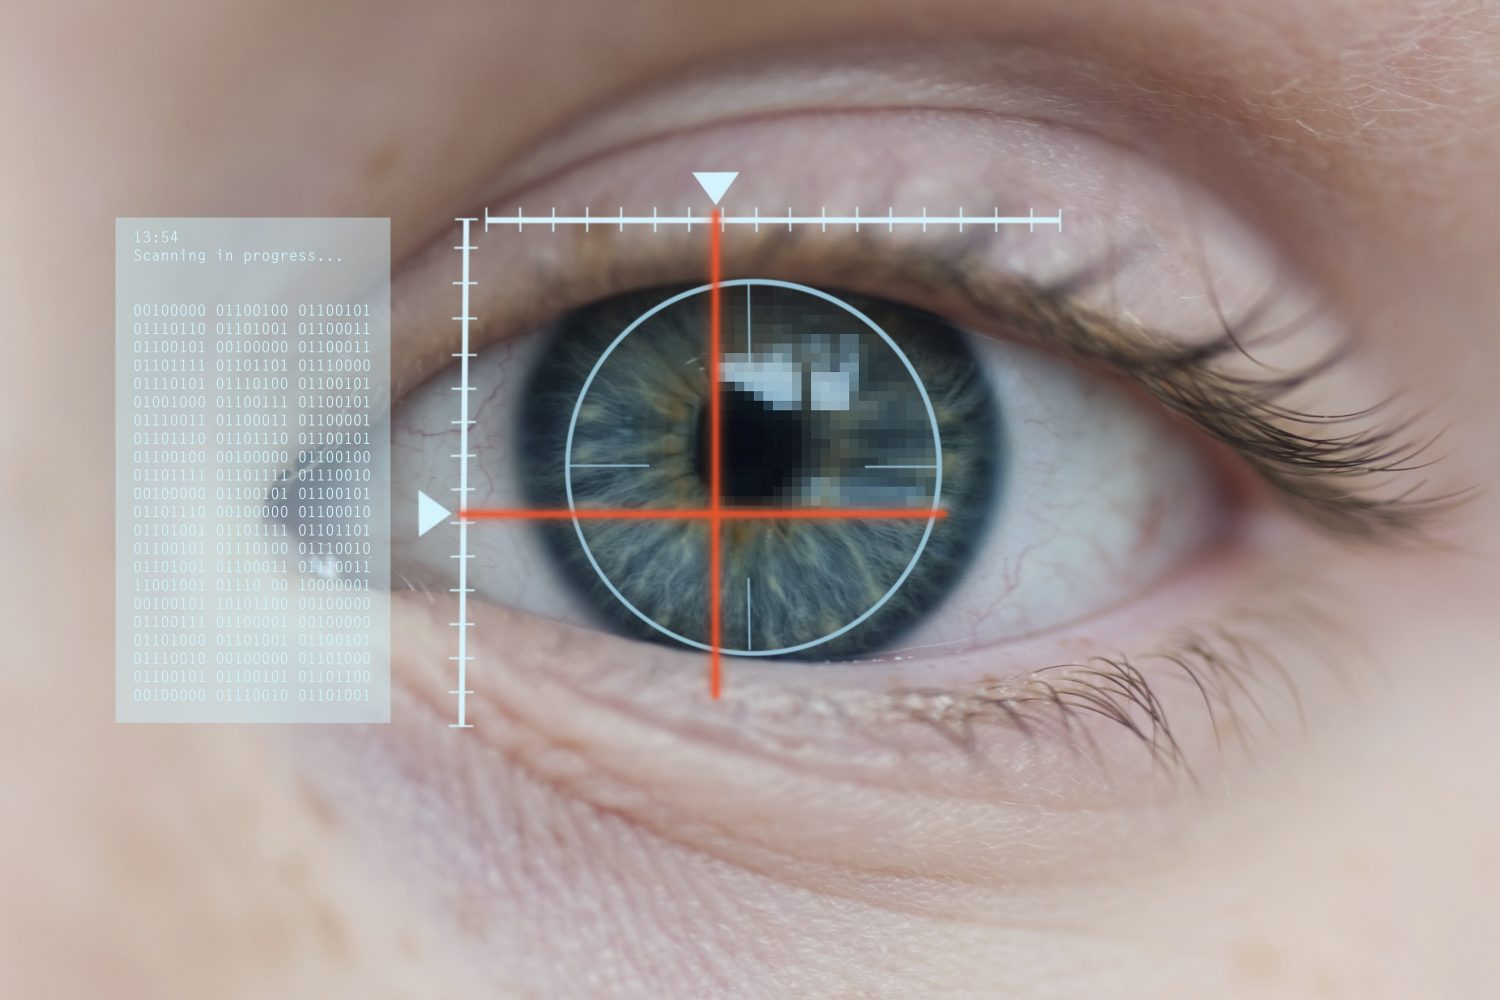 Facial recognition airport of the future